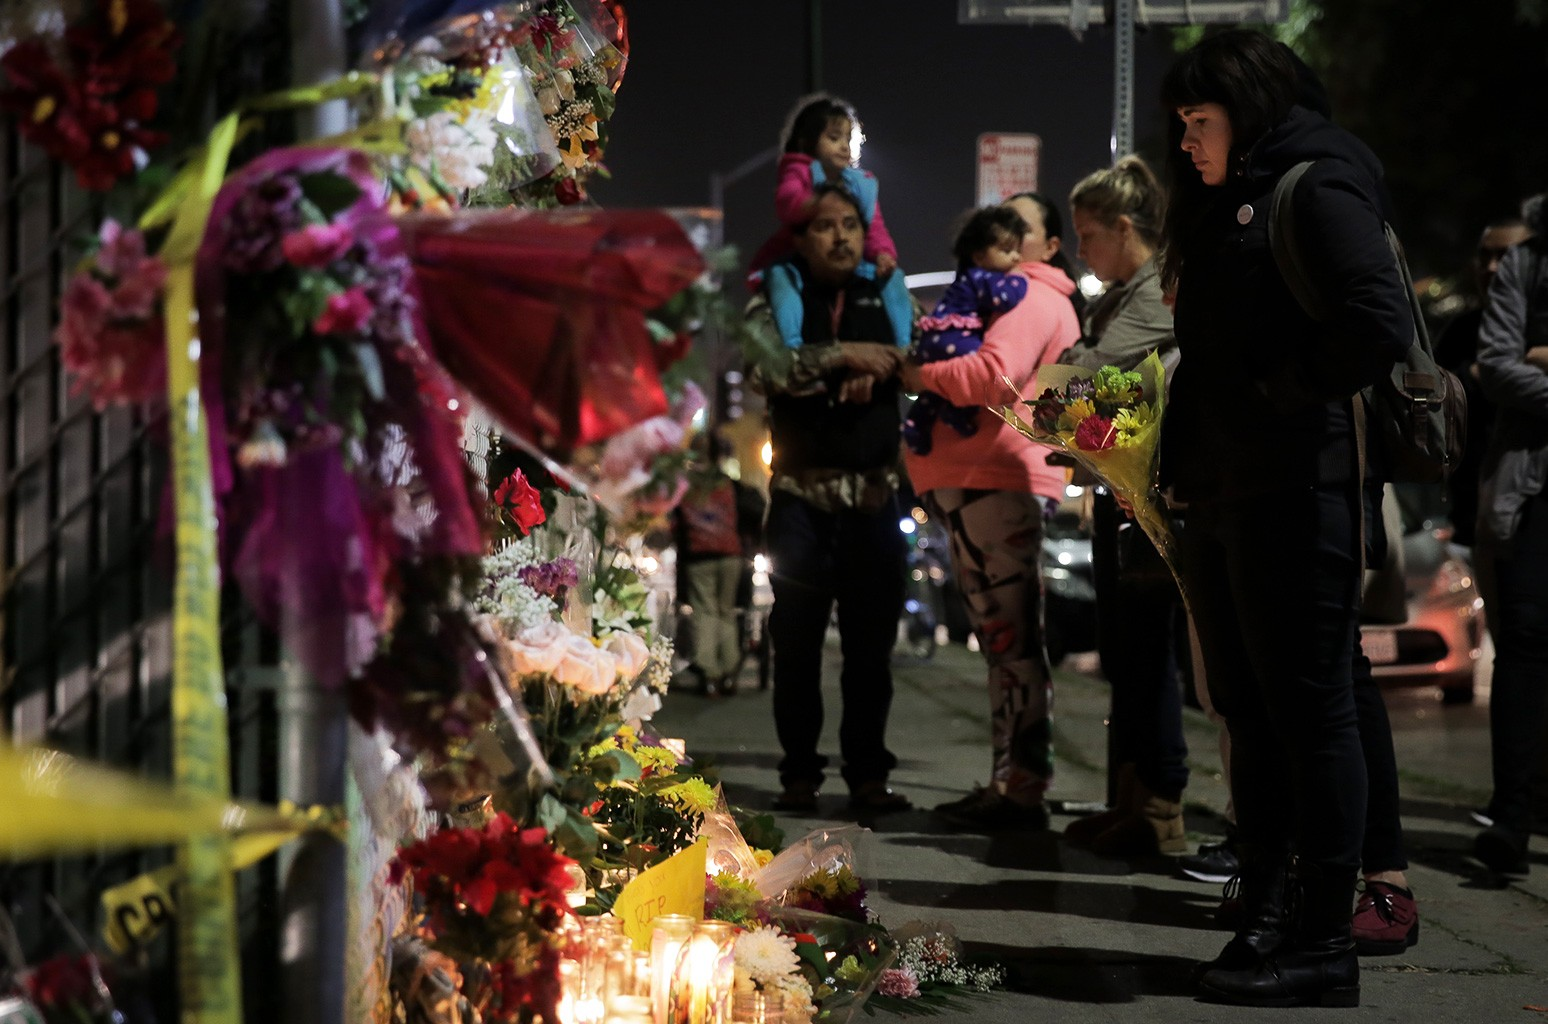 People look at a memorial near the site of a warehouse fire that has claimed the lives of at least thirty-six people on Dec. 5, 2016 in Oakland, Calif.